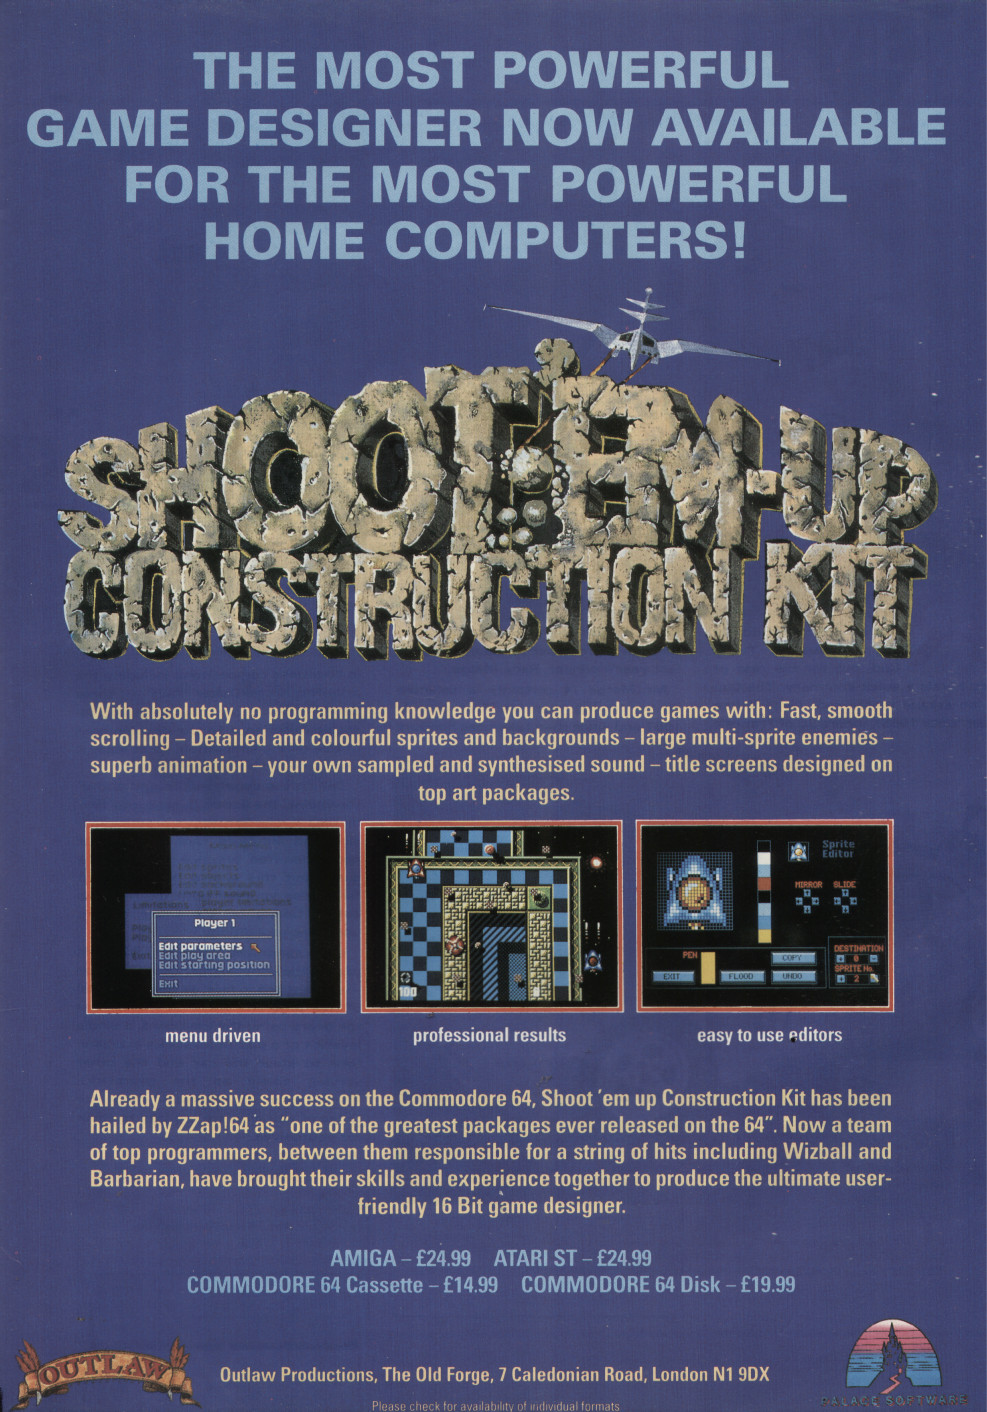 Shoot'em-up Construction Kit | Magazines from the Past Wiki | FANDOM